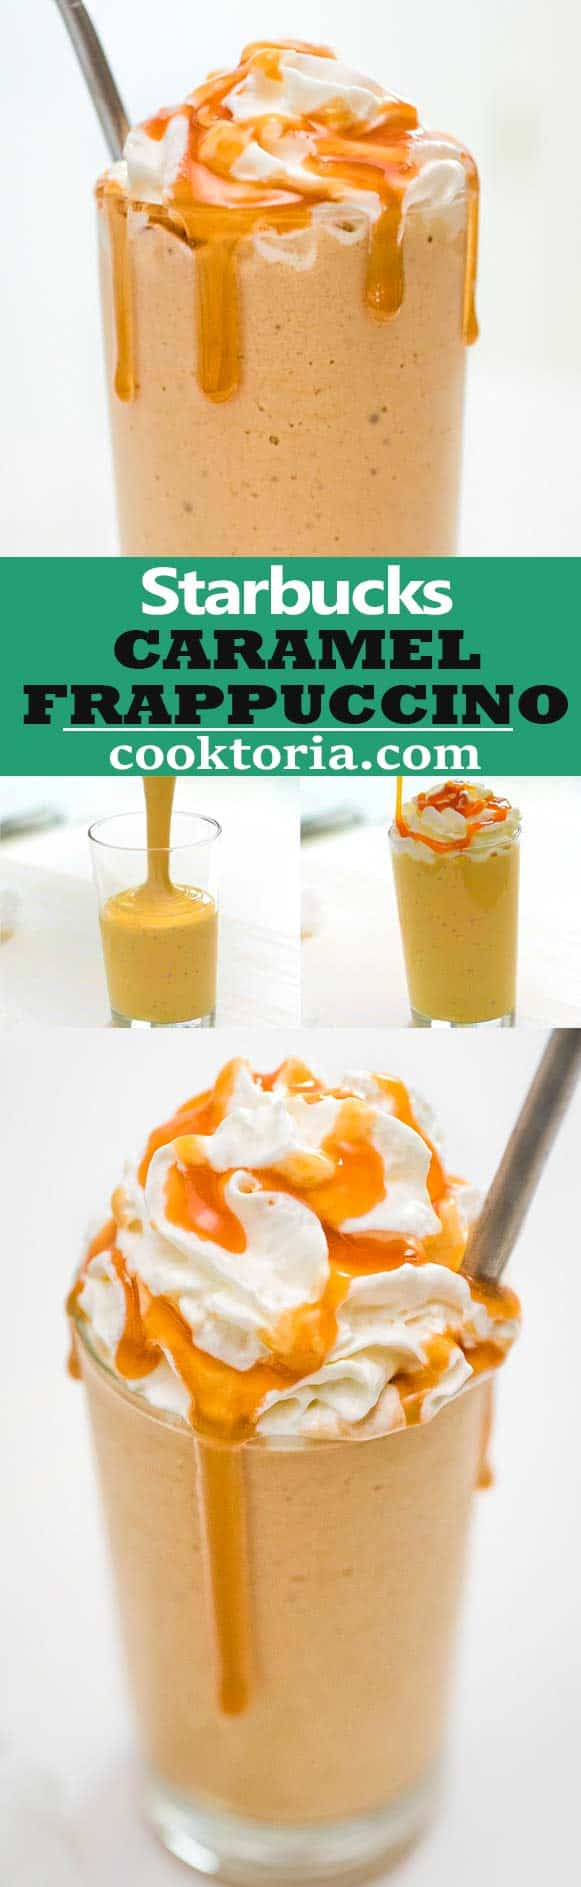 Smooth, creamy, and delicious, this Caramel Frappuccino is the only recipe you'll ever need! Learn all the steps and ingredients to make this popular Starbucks beverage at home.  ❤ COOKTORIA.COM